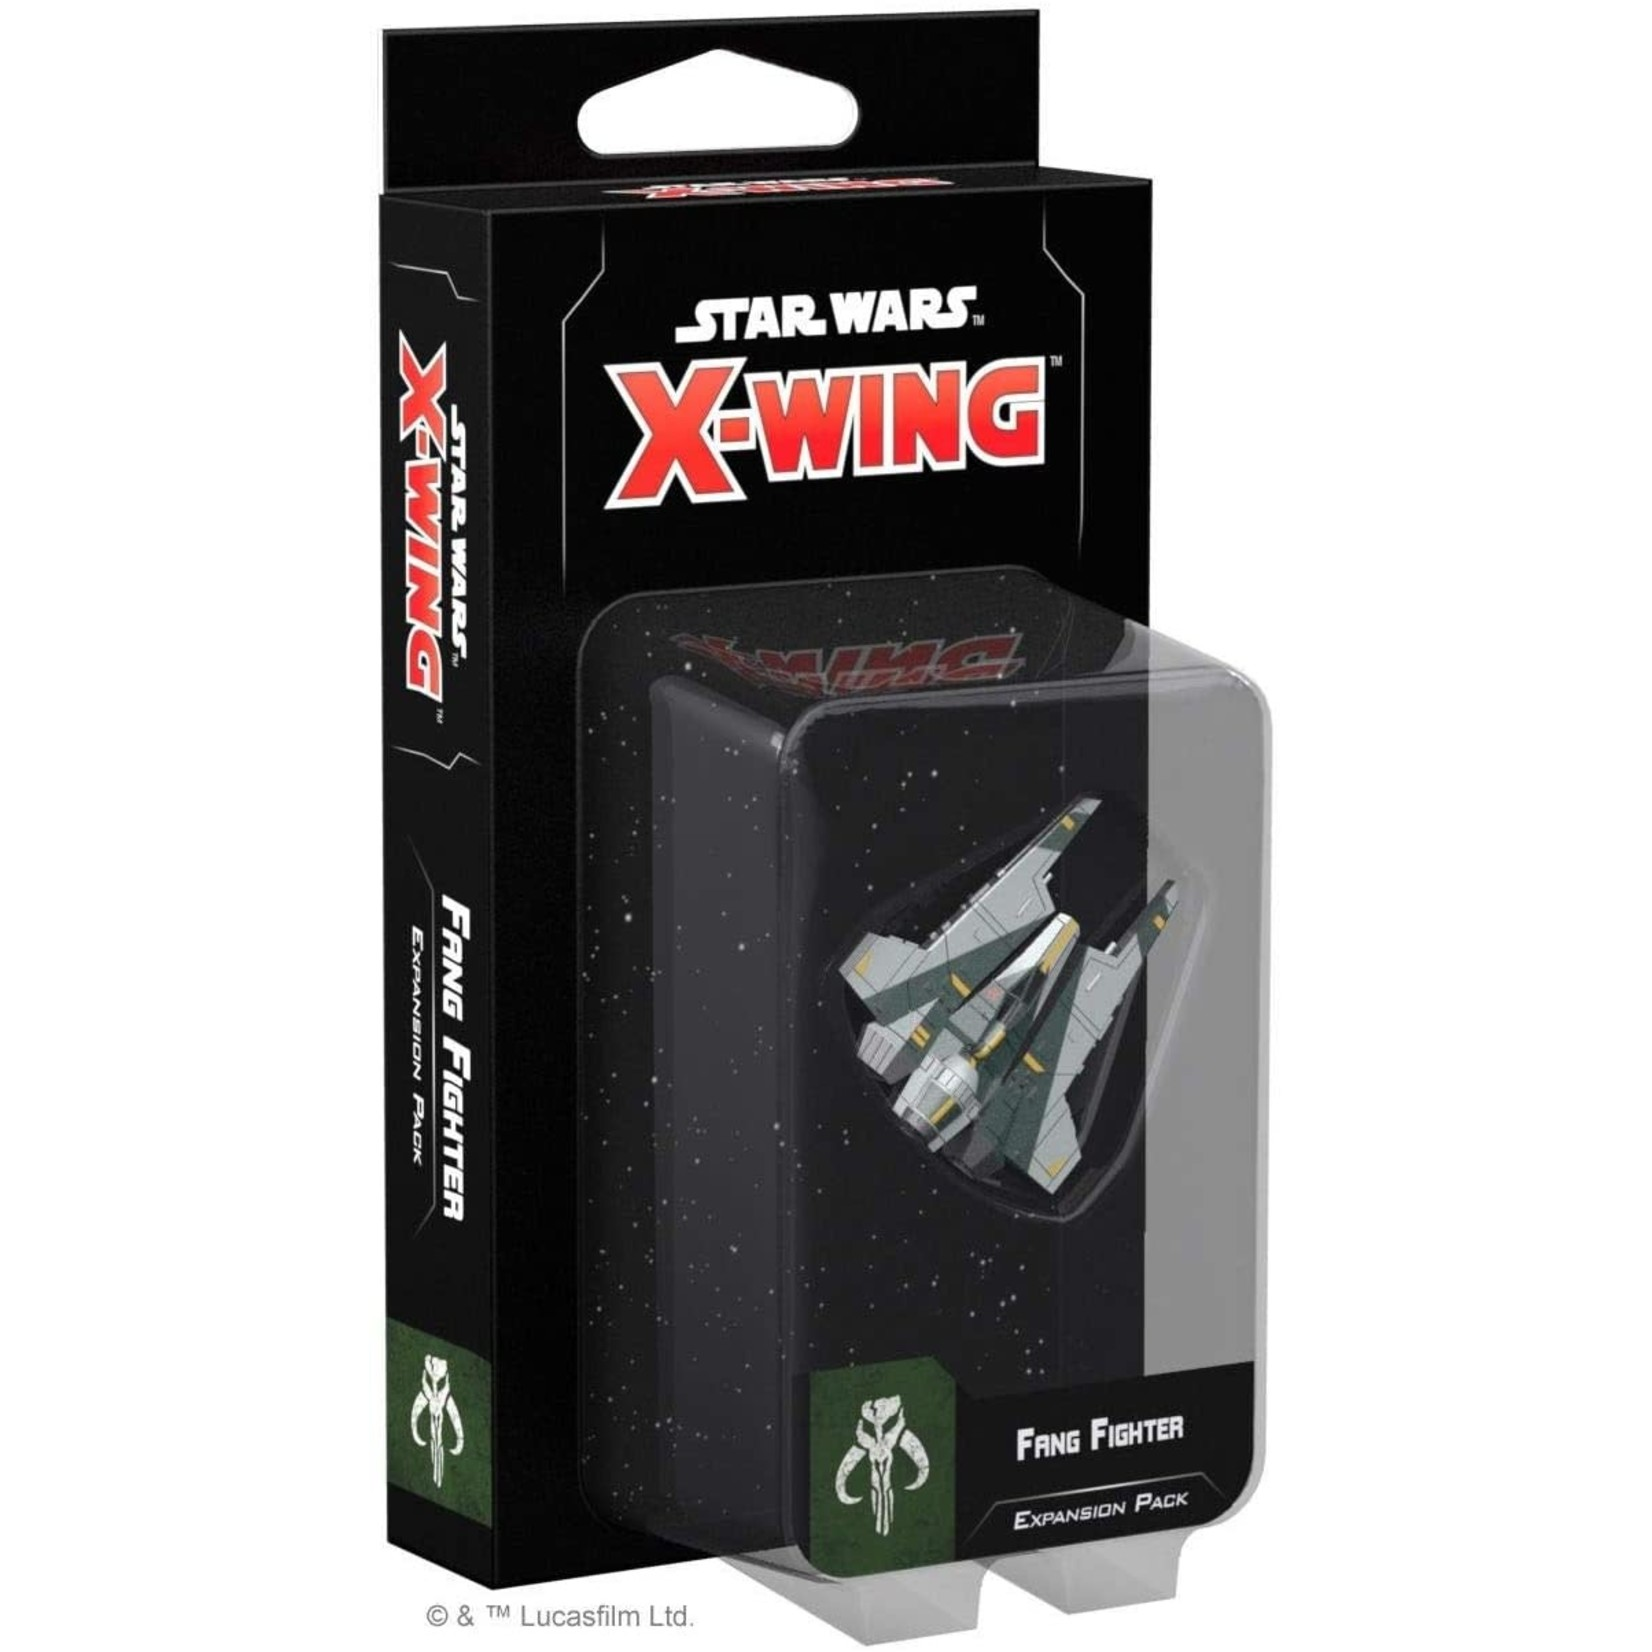 Star Wars X-Wing 2e: Fang Fighter Expansion